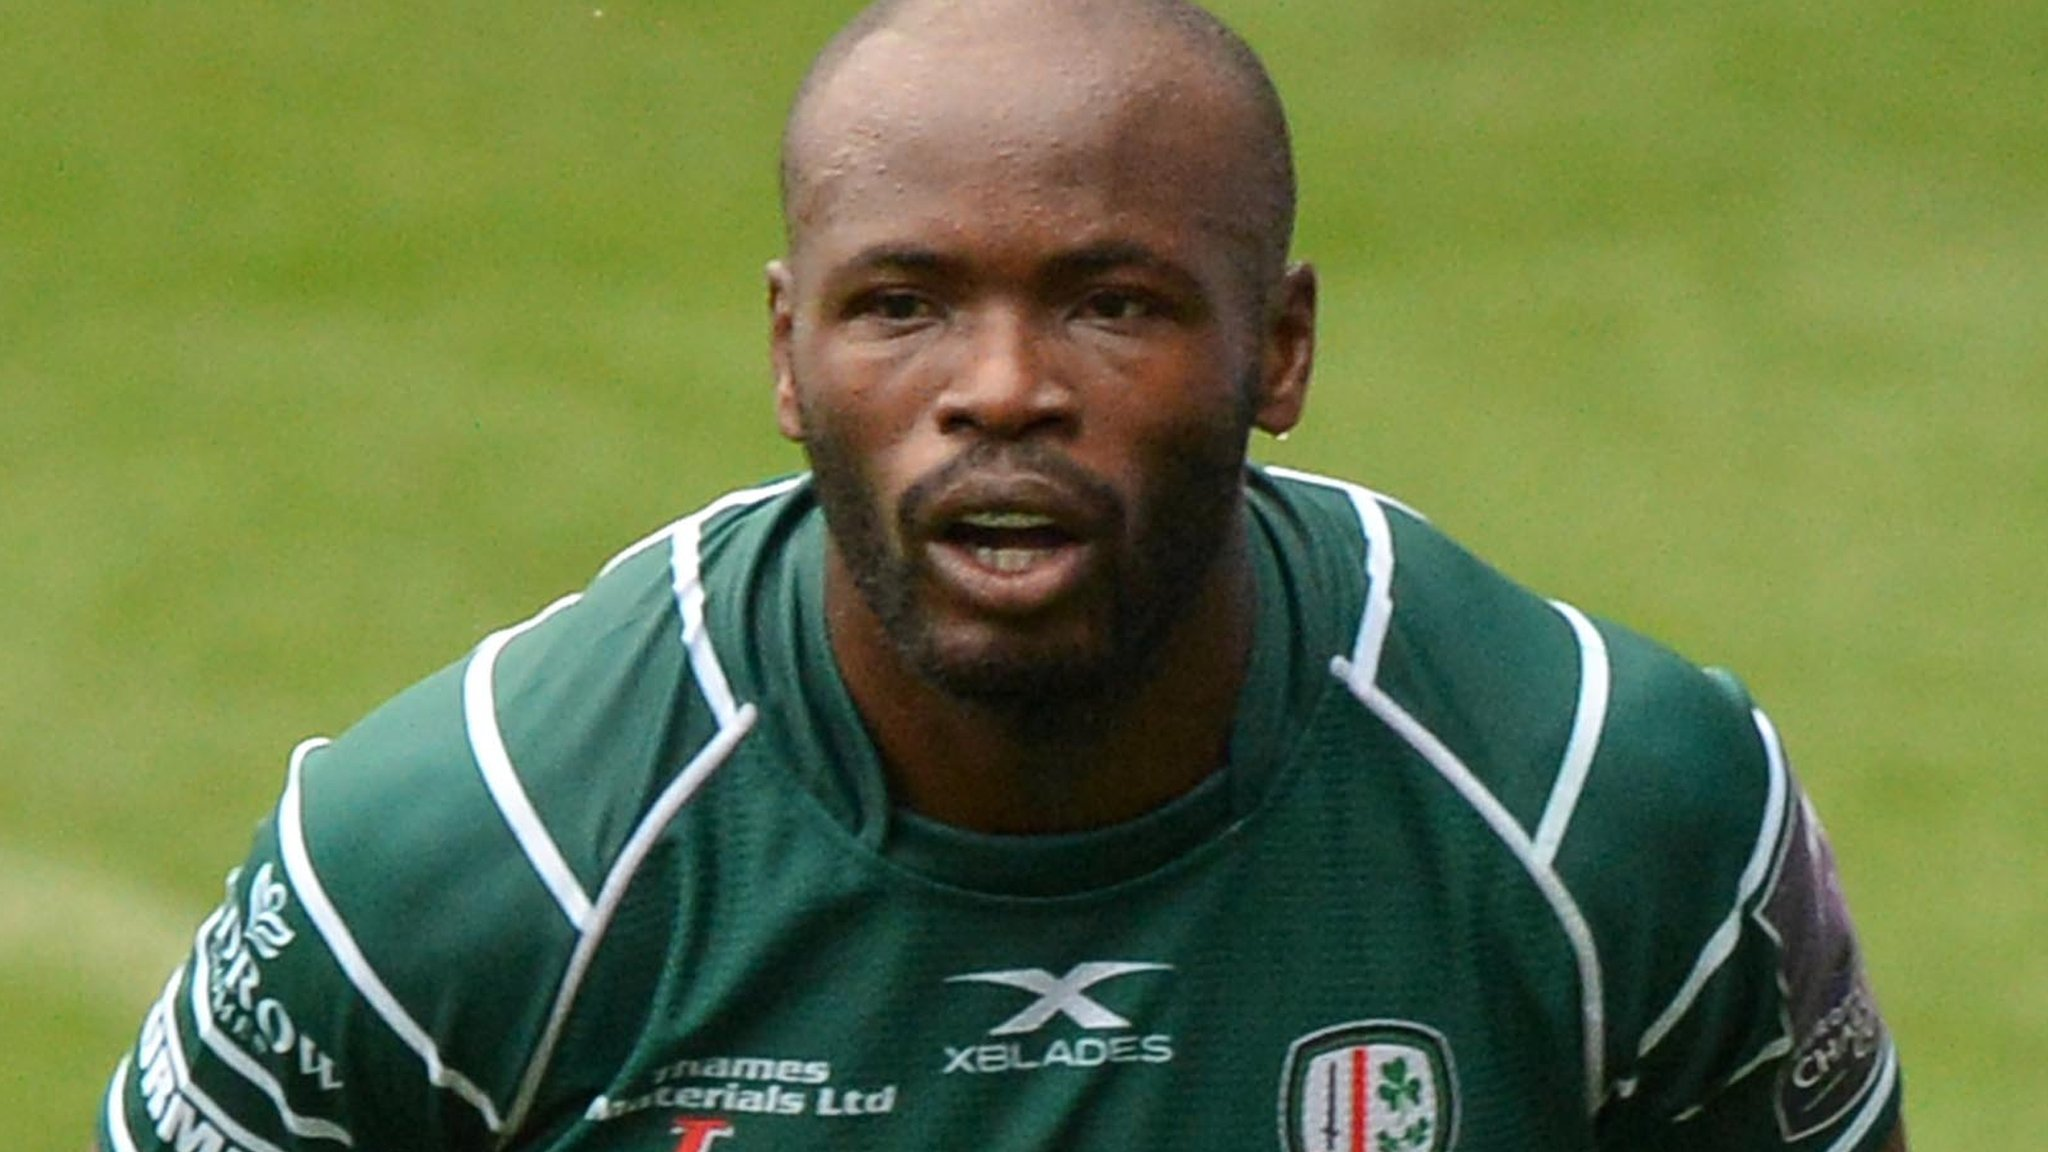 Topsy Ojo: London Irish legend to retire after 16 years with club